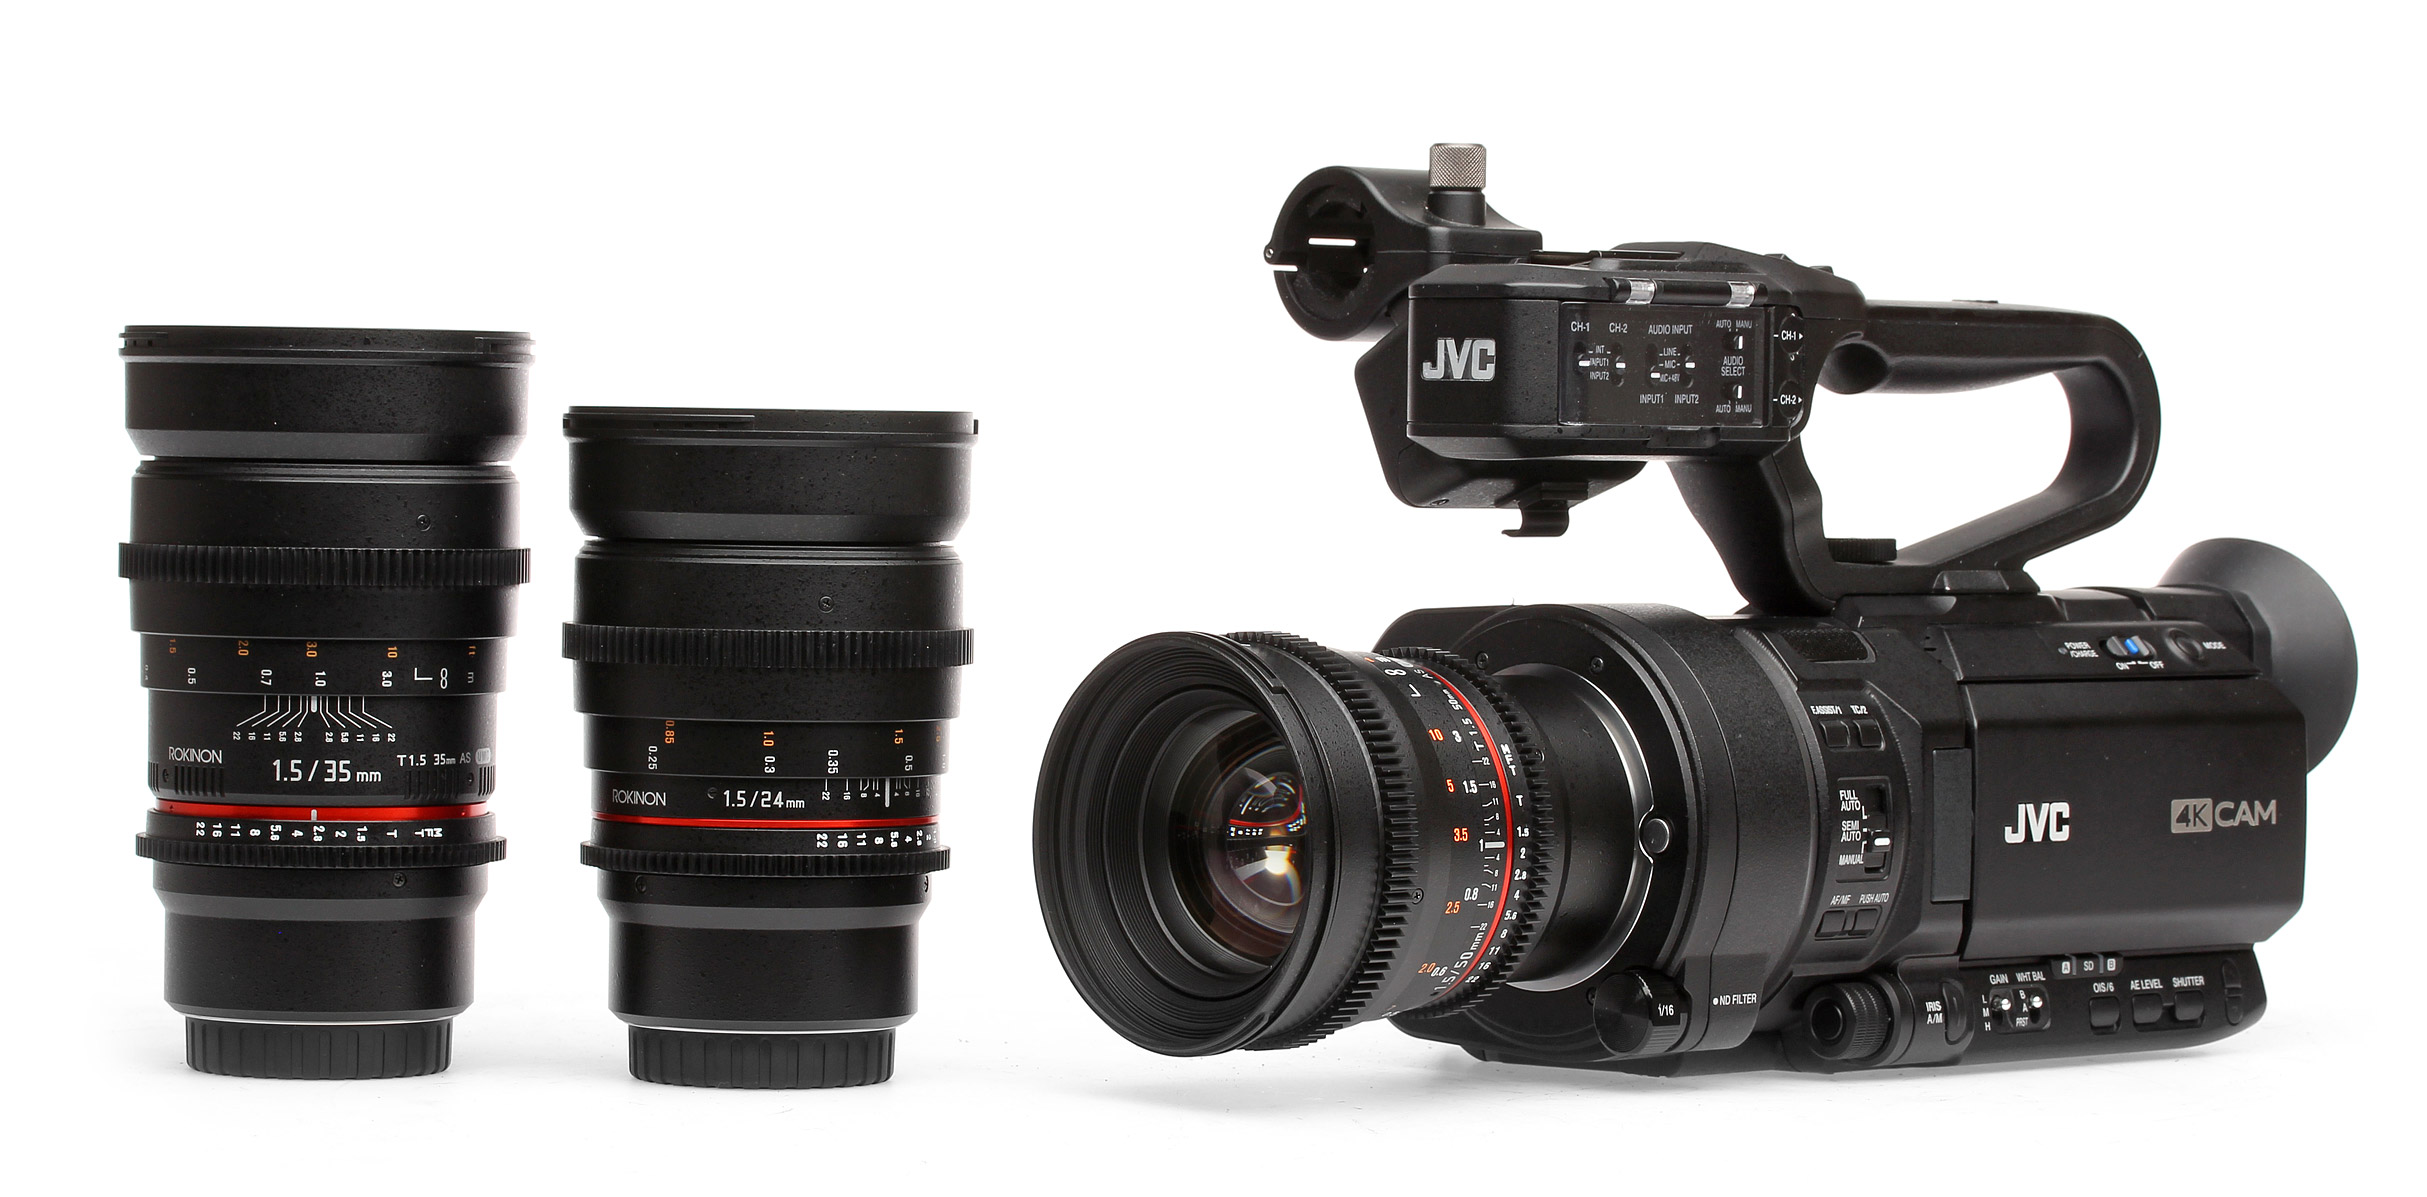 The GY-LS300CHE pictured with Rokinon lenses